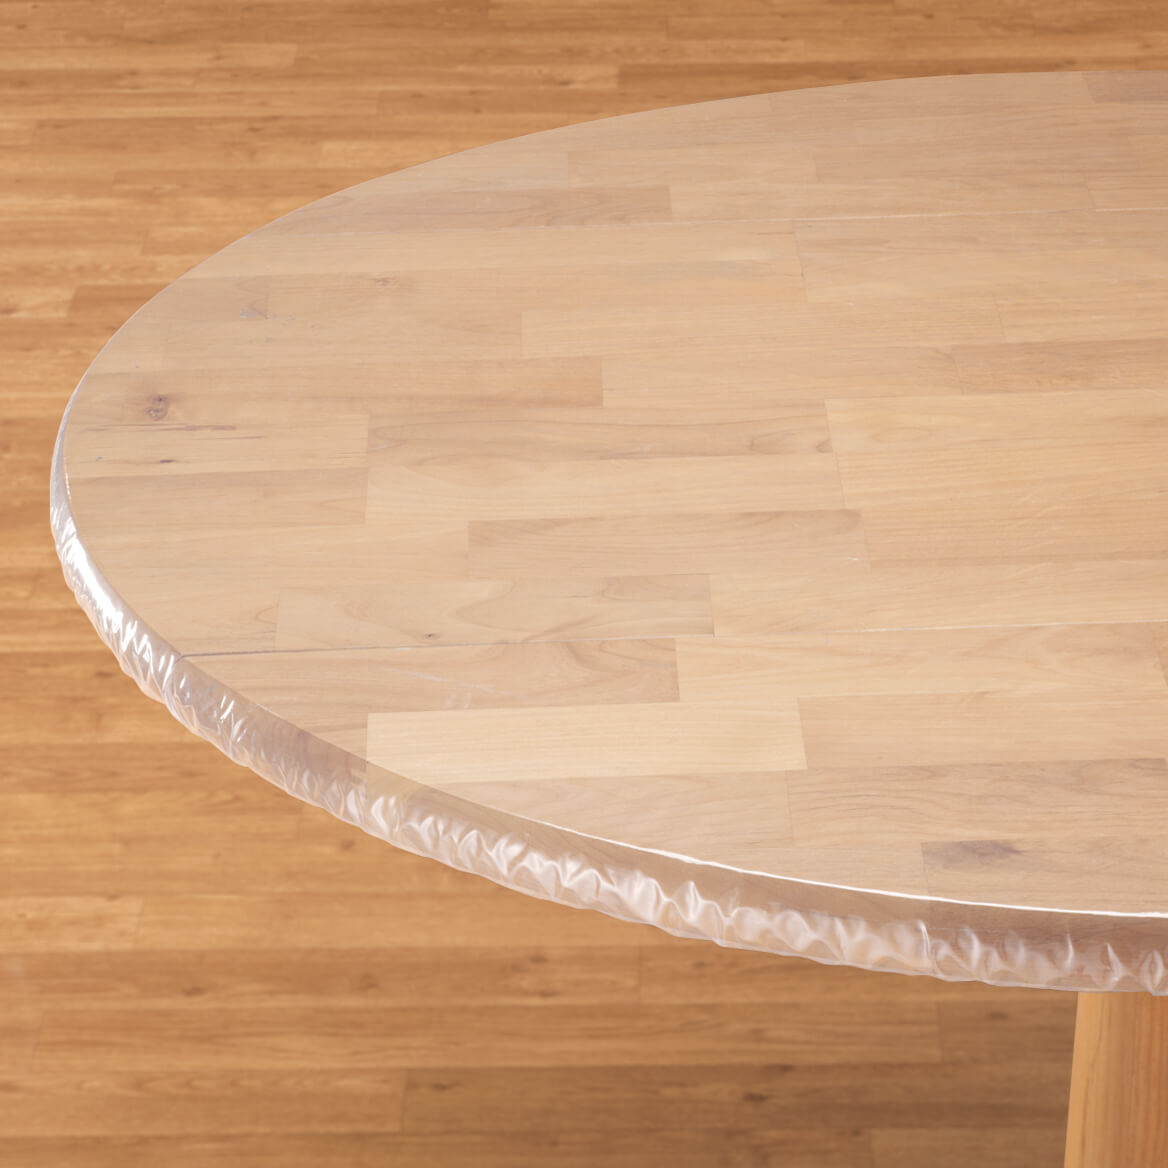 Clear Elasticized Table Cover Elasticized Table Cover Walter Drake